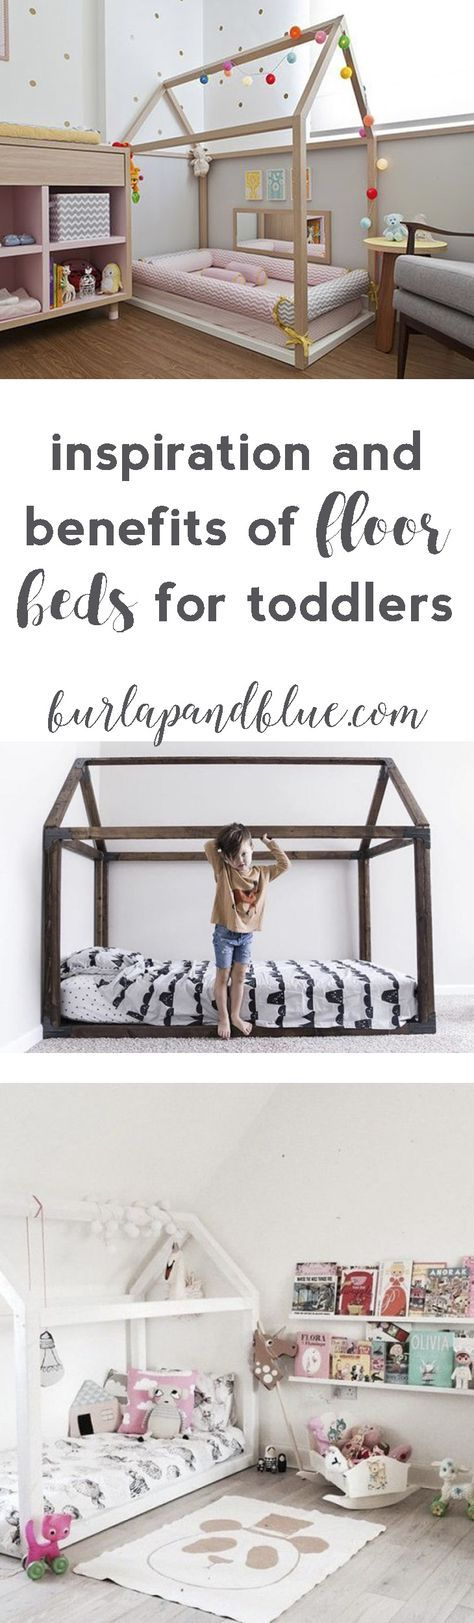 Floor Bed For Toddlers